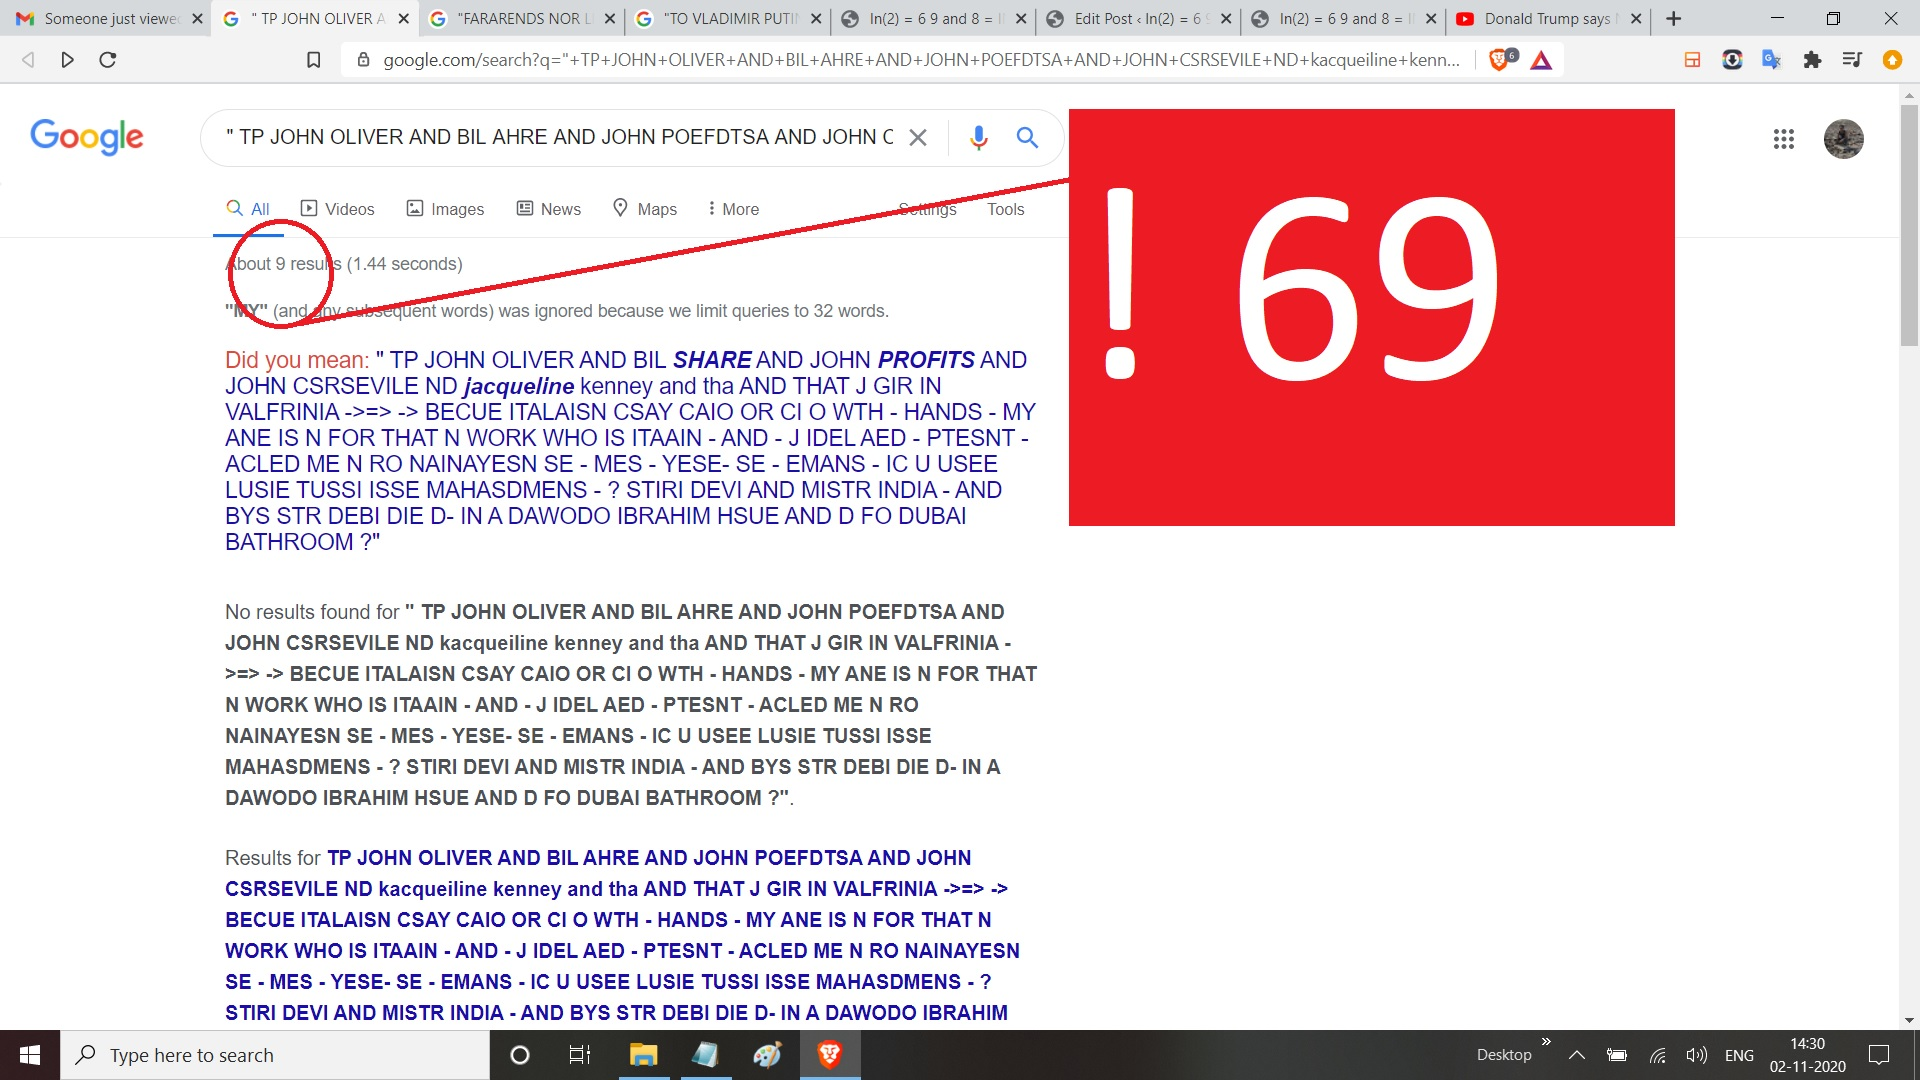 """"""" TP JOHN OLIVER AND BIL AHRE AND JOHN POEFDTSA AND JOHN CSRSEVILE ND kacqueiline kenney and tha AND THAT J GIR IN VALFRINIA ->=> -> BECUE ITALAISN CSAY CAIO OR CI O WTH - HANDS - MY ANE IS N FOR THAT N WORK WHO IS ITAAIN - AND - J IDEL AED - PTESNT - ACLED ME N RO NAINAYESN SE - MES - YESE- SE - EMANS - IC U USEE LUSIE TUSSI ISSE MAHASDMENS - ? STIRI DEVI AND MISTR INDIA - AND BYS STR DEBI DIE D- IN A DAWODO IBRAHIM HSUE AND D FO DUBAI BATHROOM ?"""""""